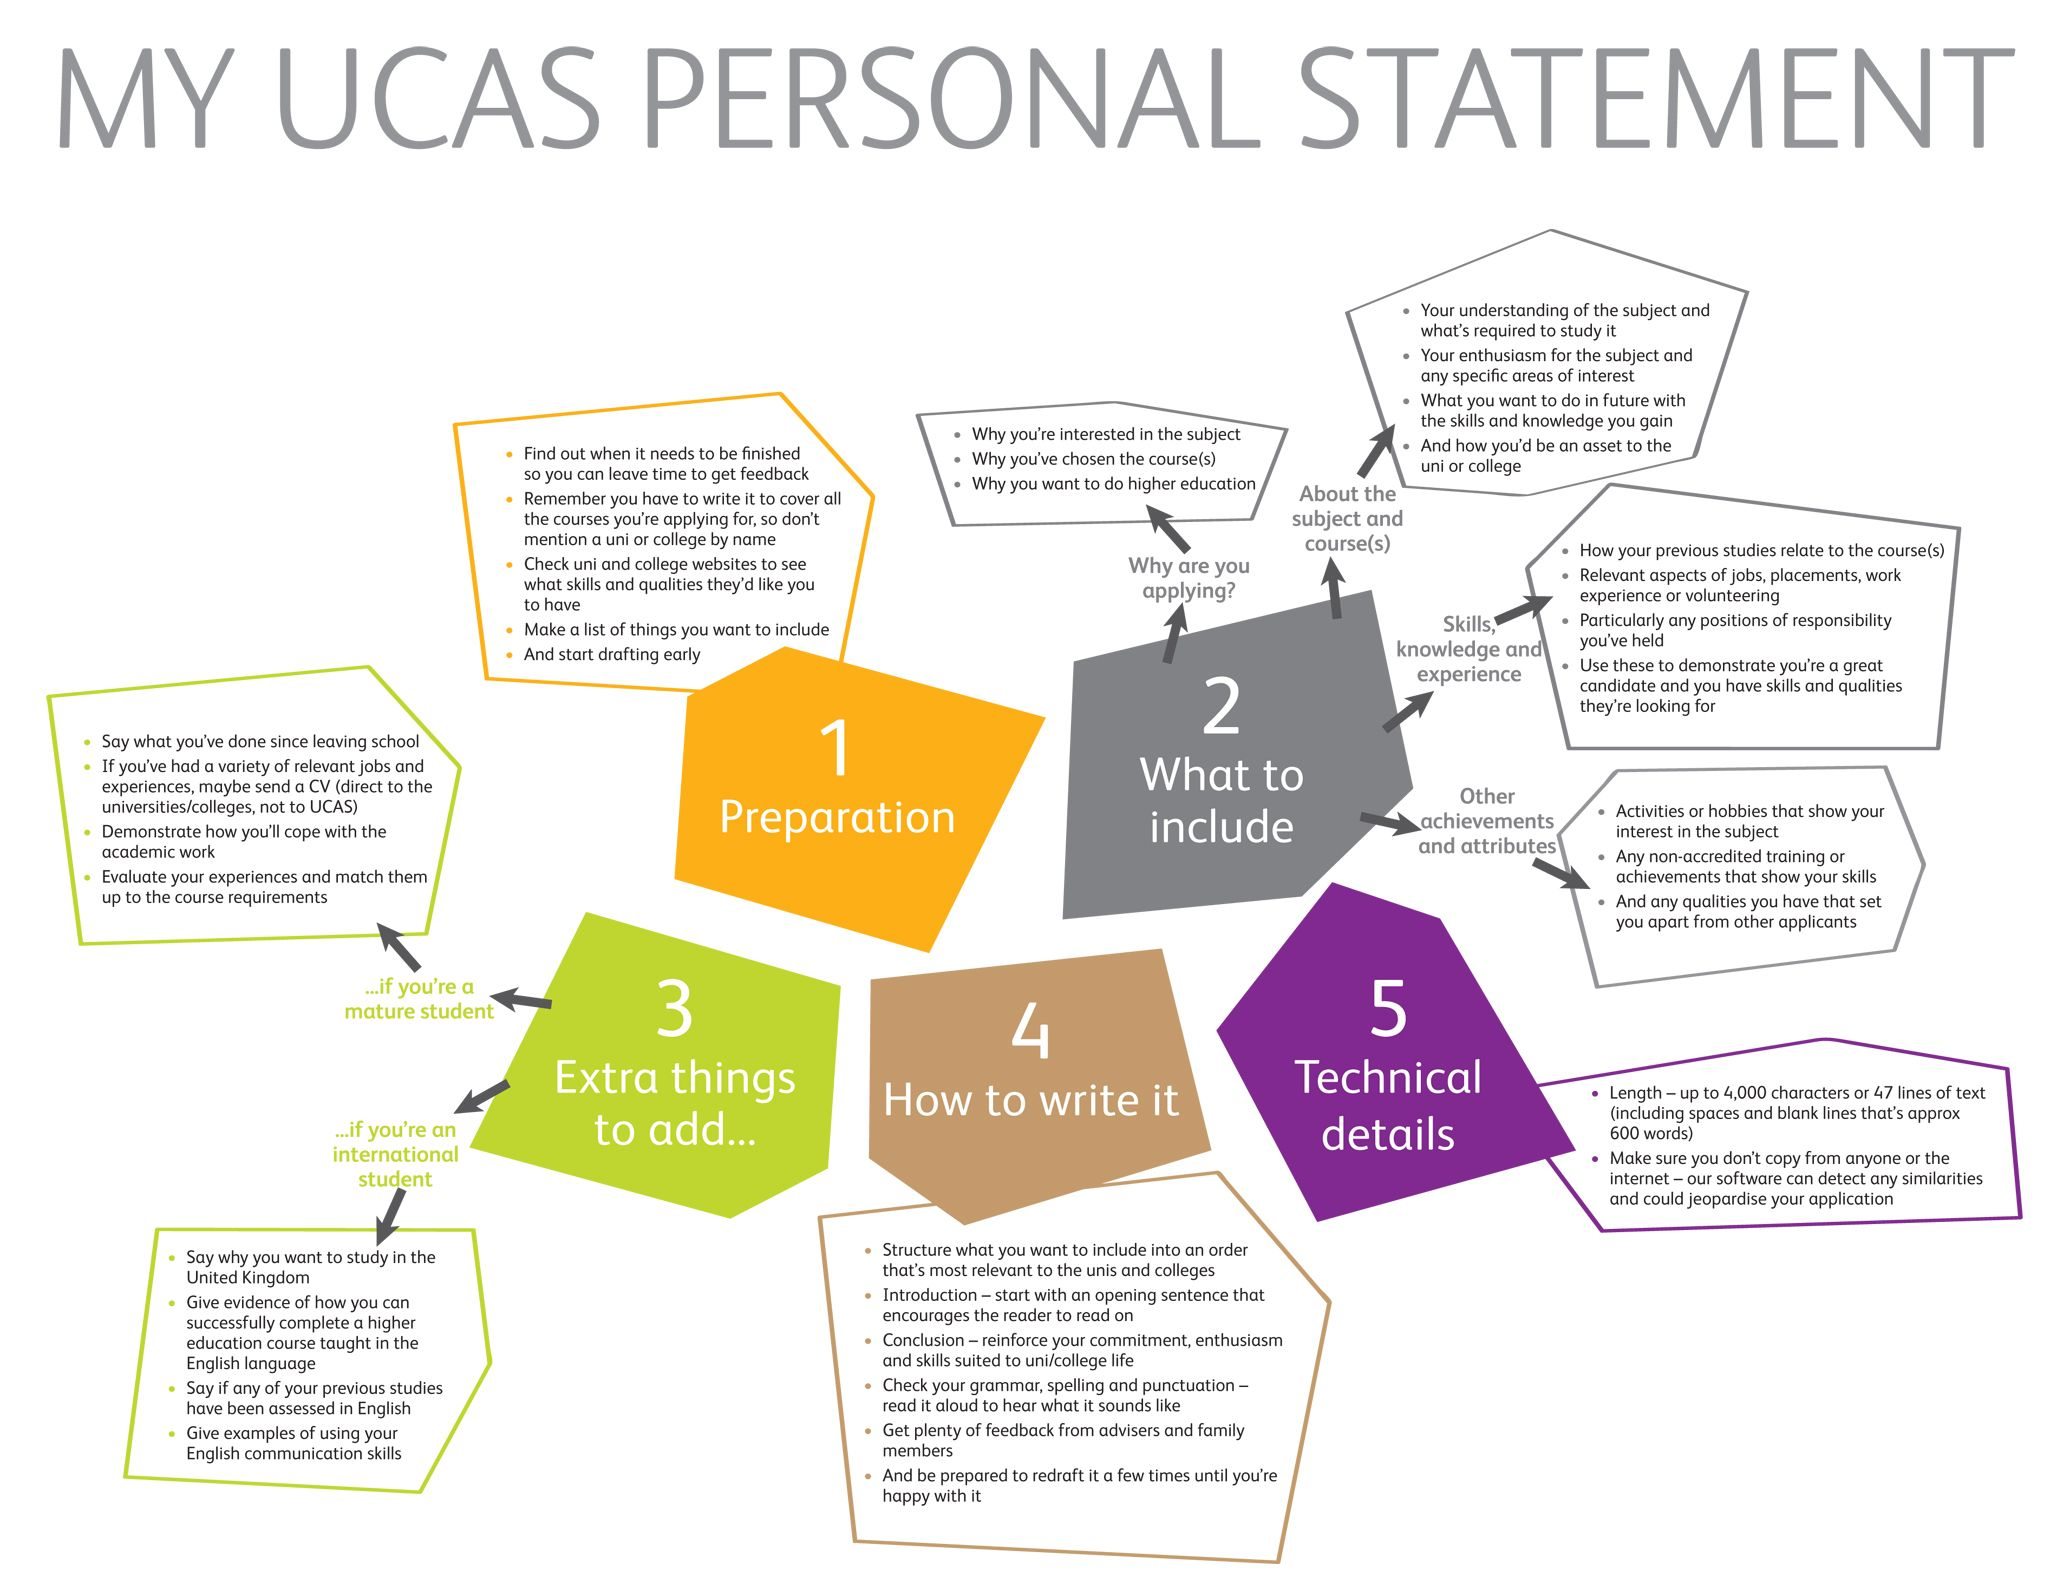 how to write a personal statement for college ukraine